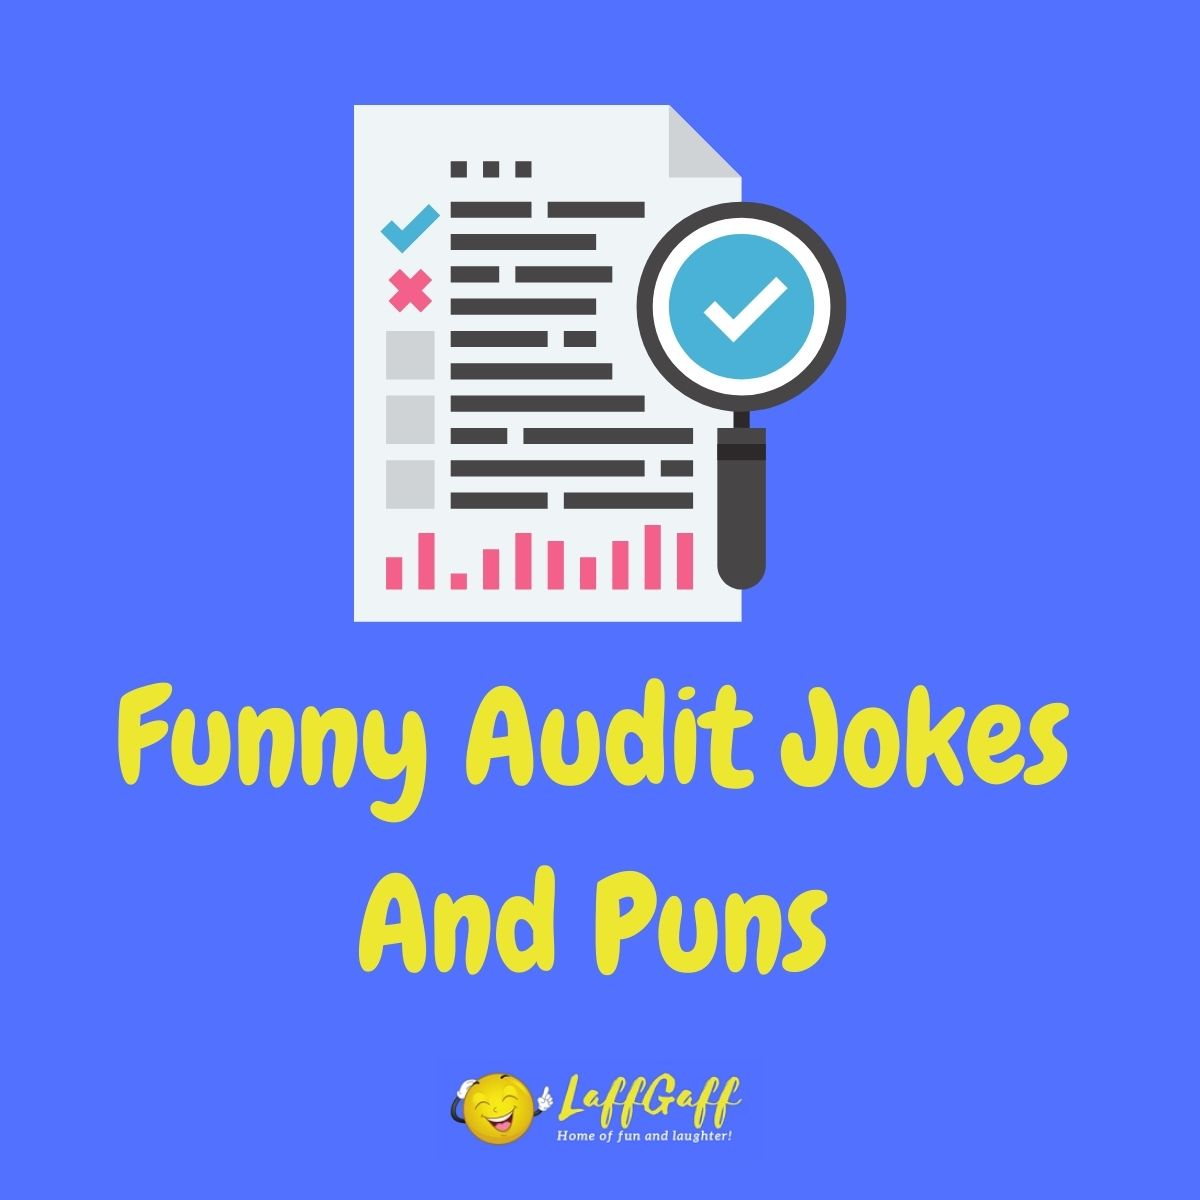 Featured image for a page of funny audit jokes and puns.